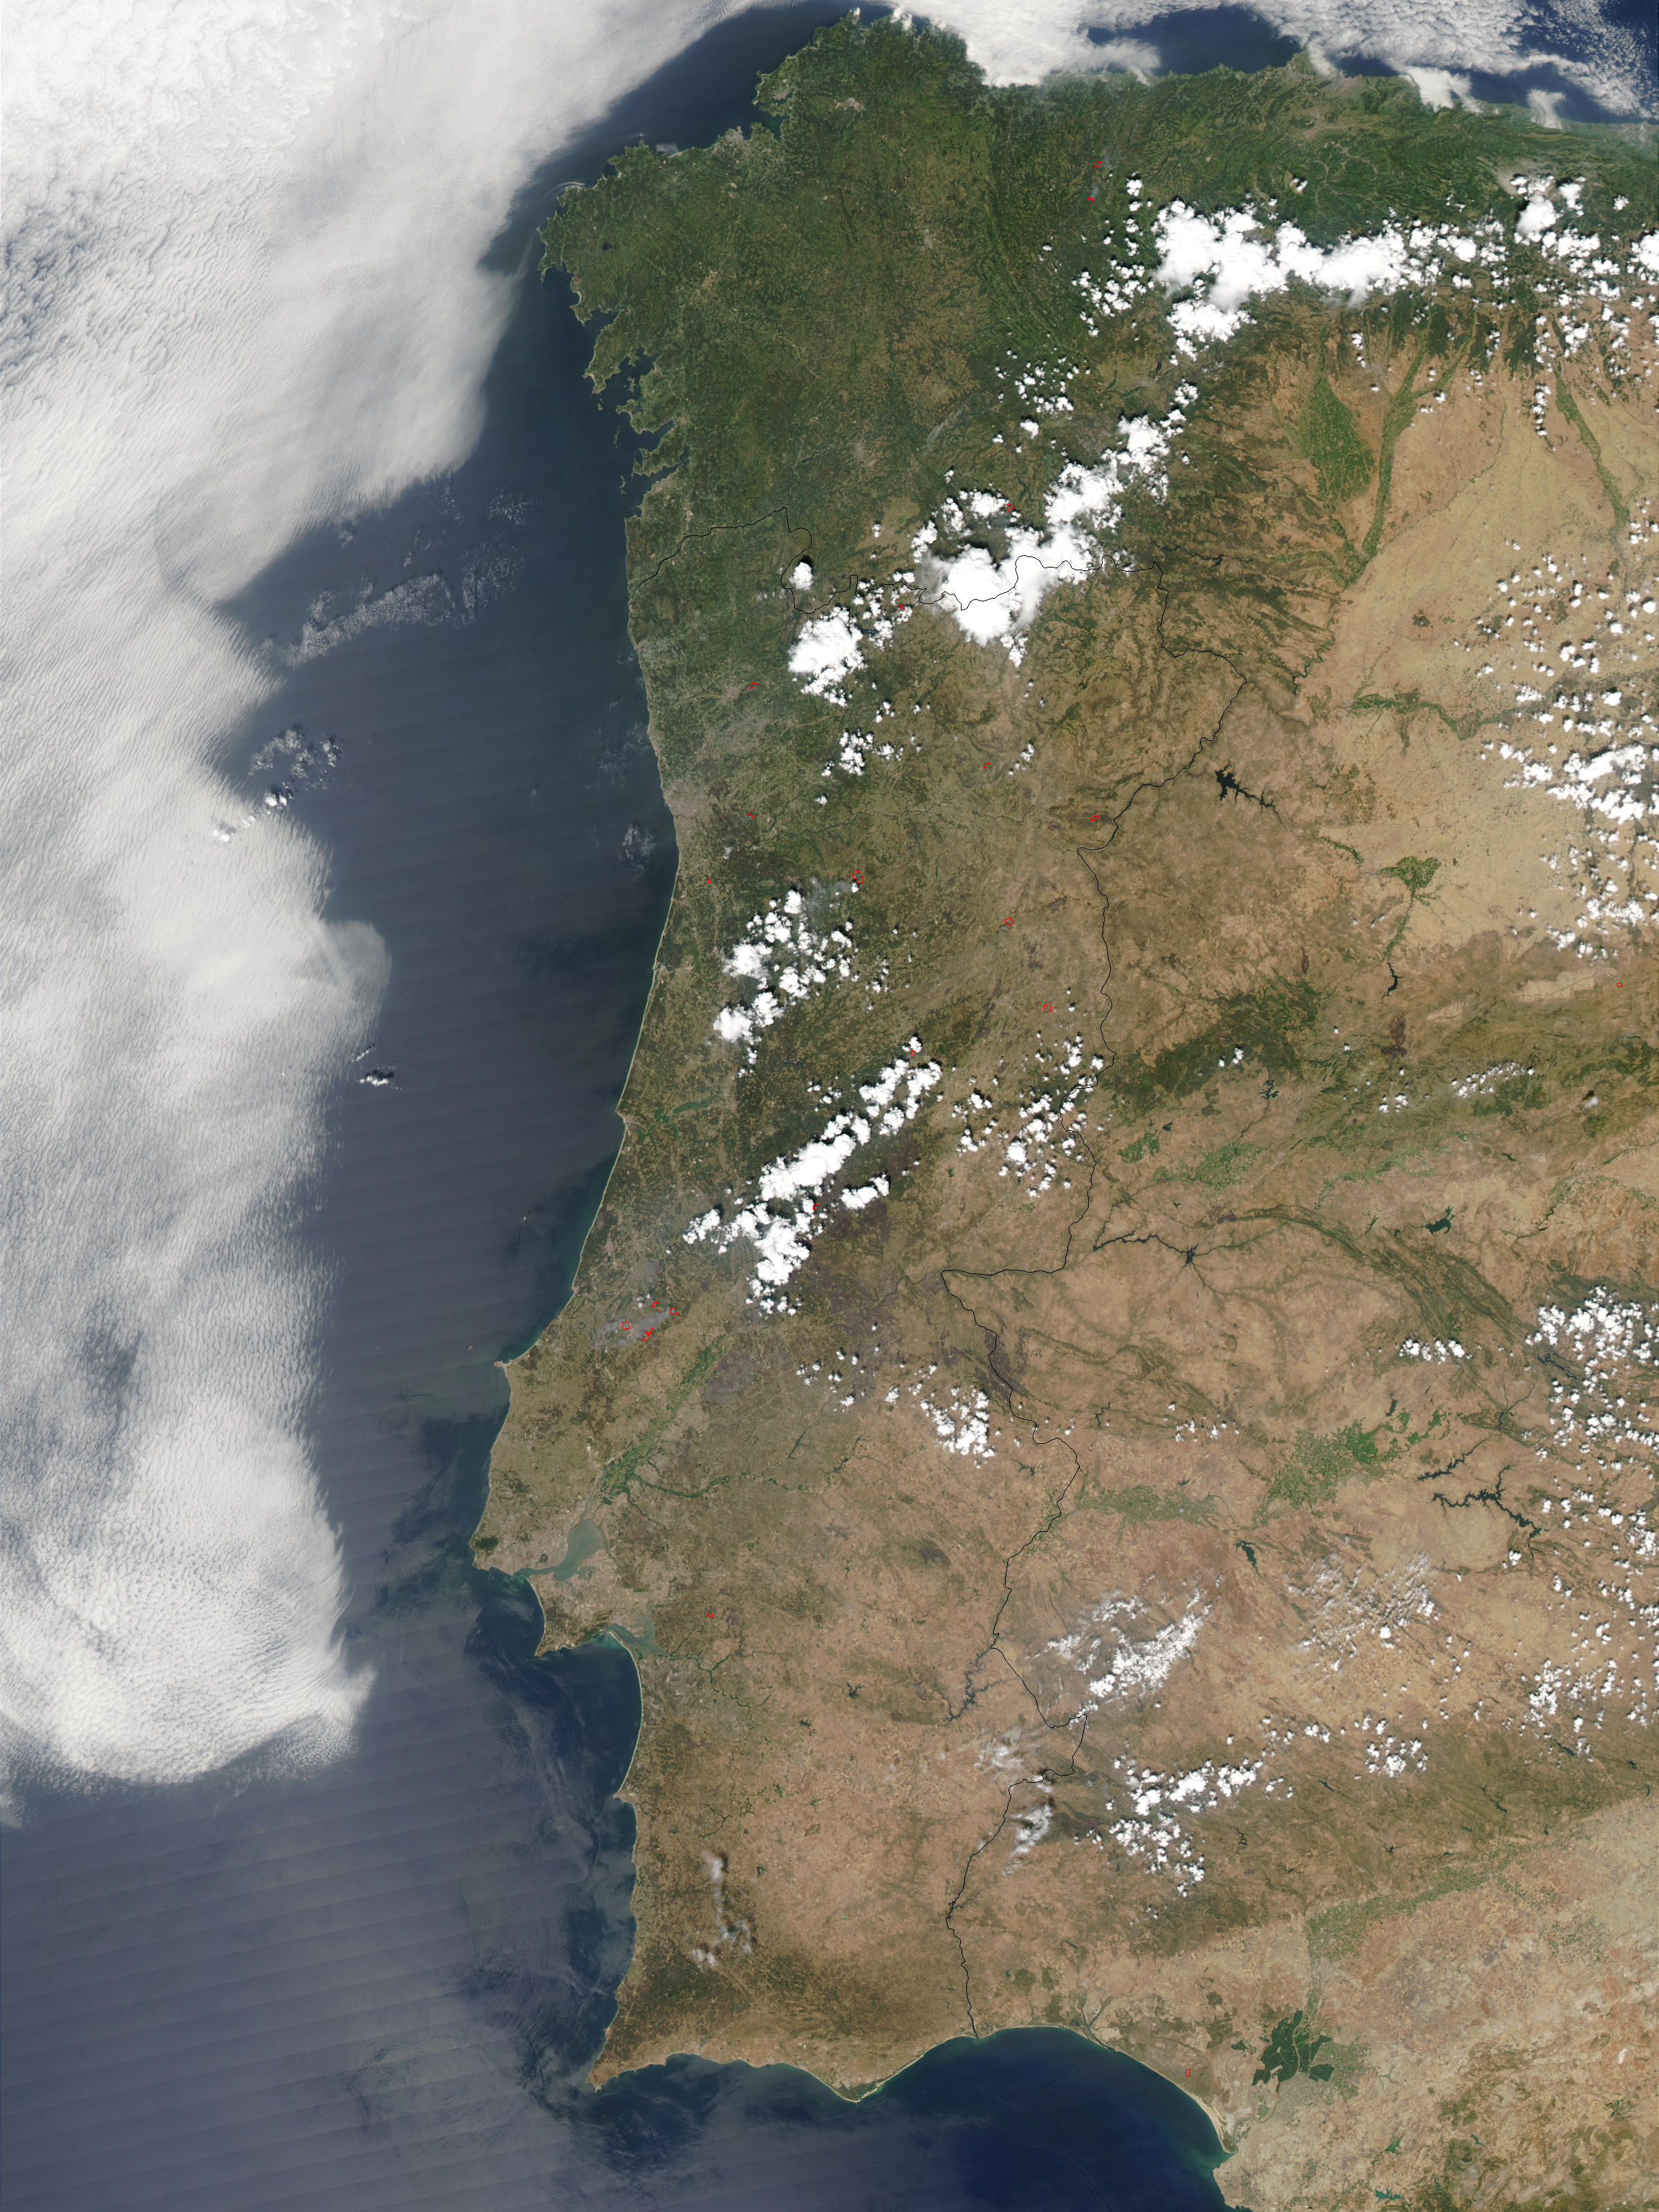 Fires across Portugal